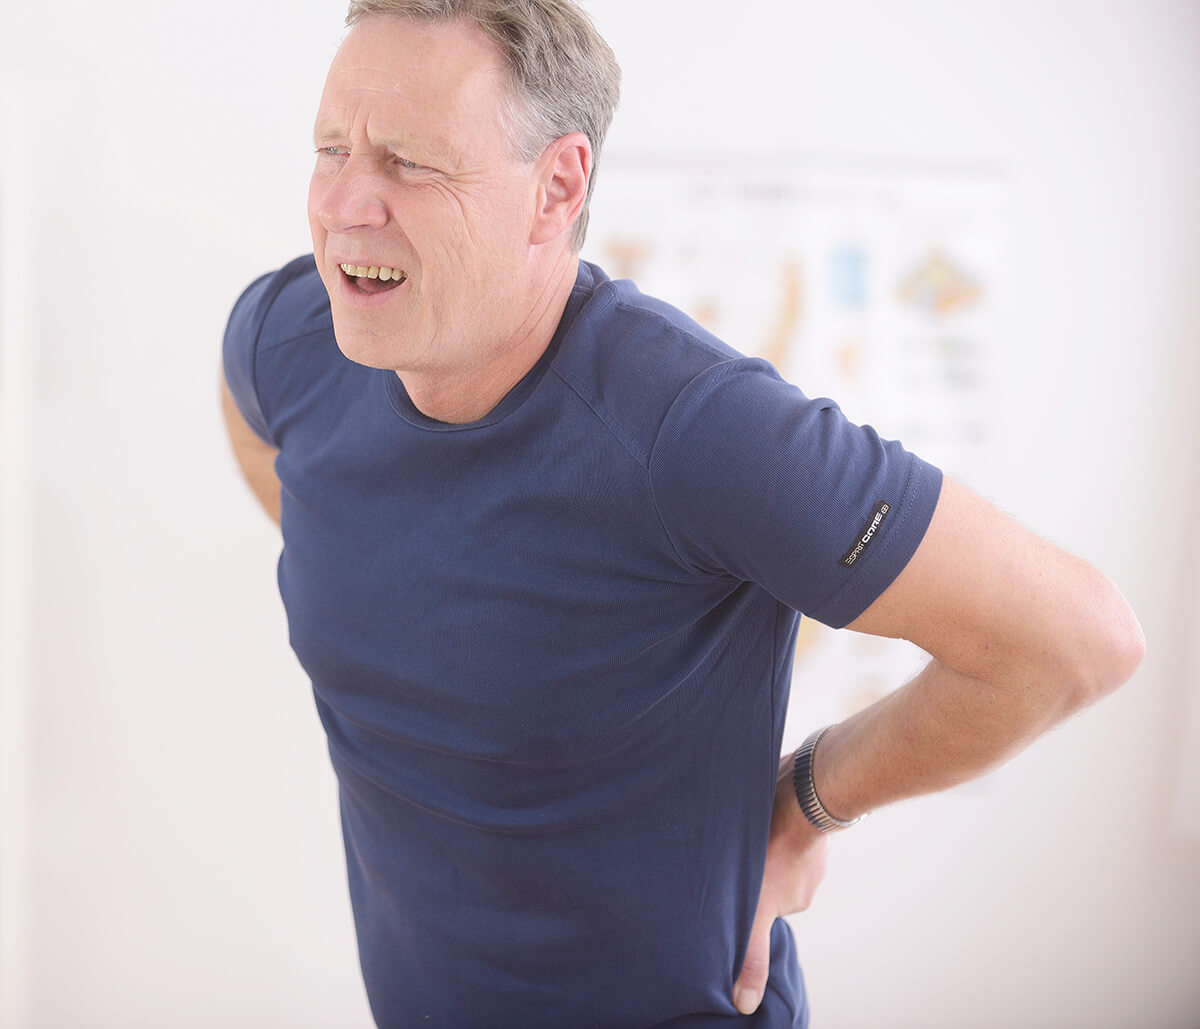 An Encinitas, CA, doctor addresses common concerns about nerve block injections